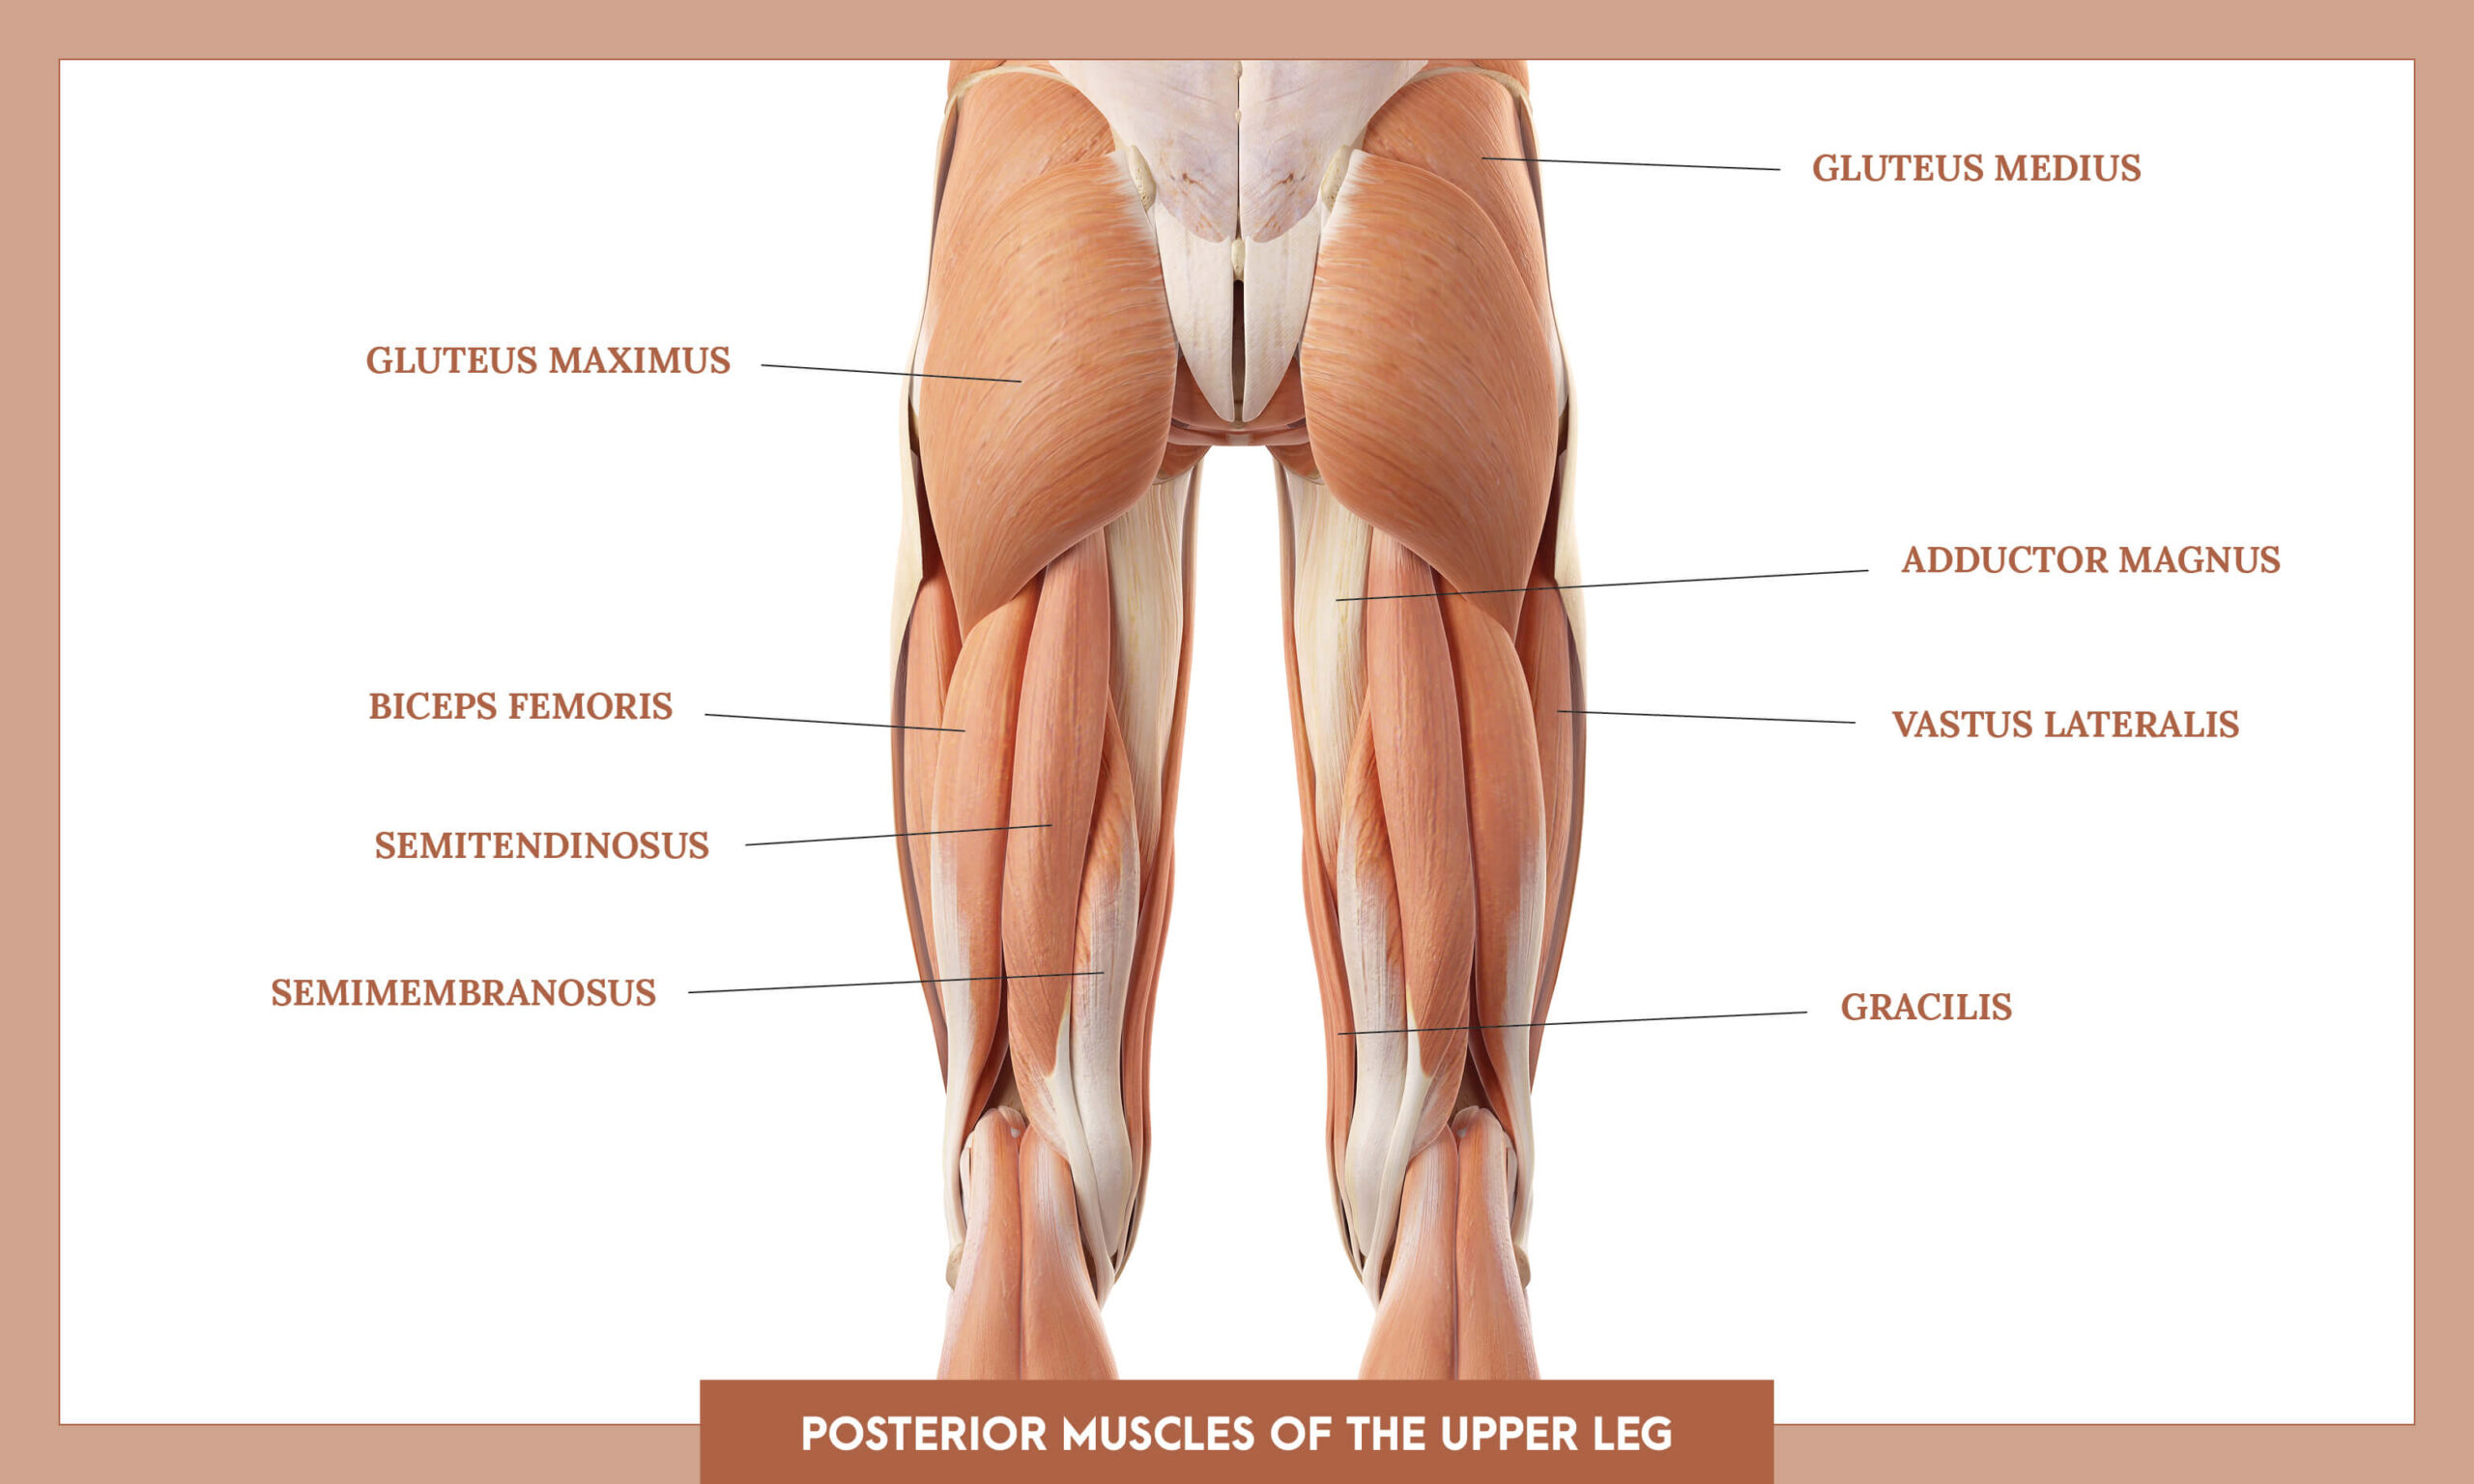 Muscles of thee Lower Limb - posterior muscles of the upper leg overview